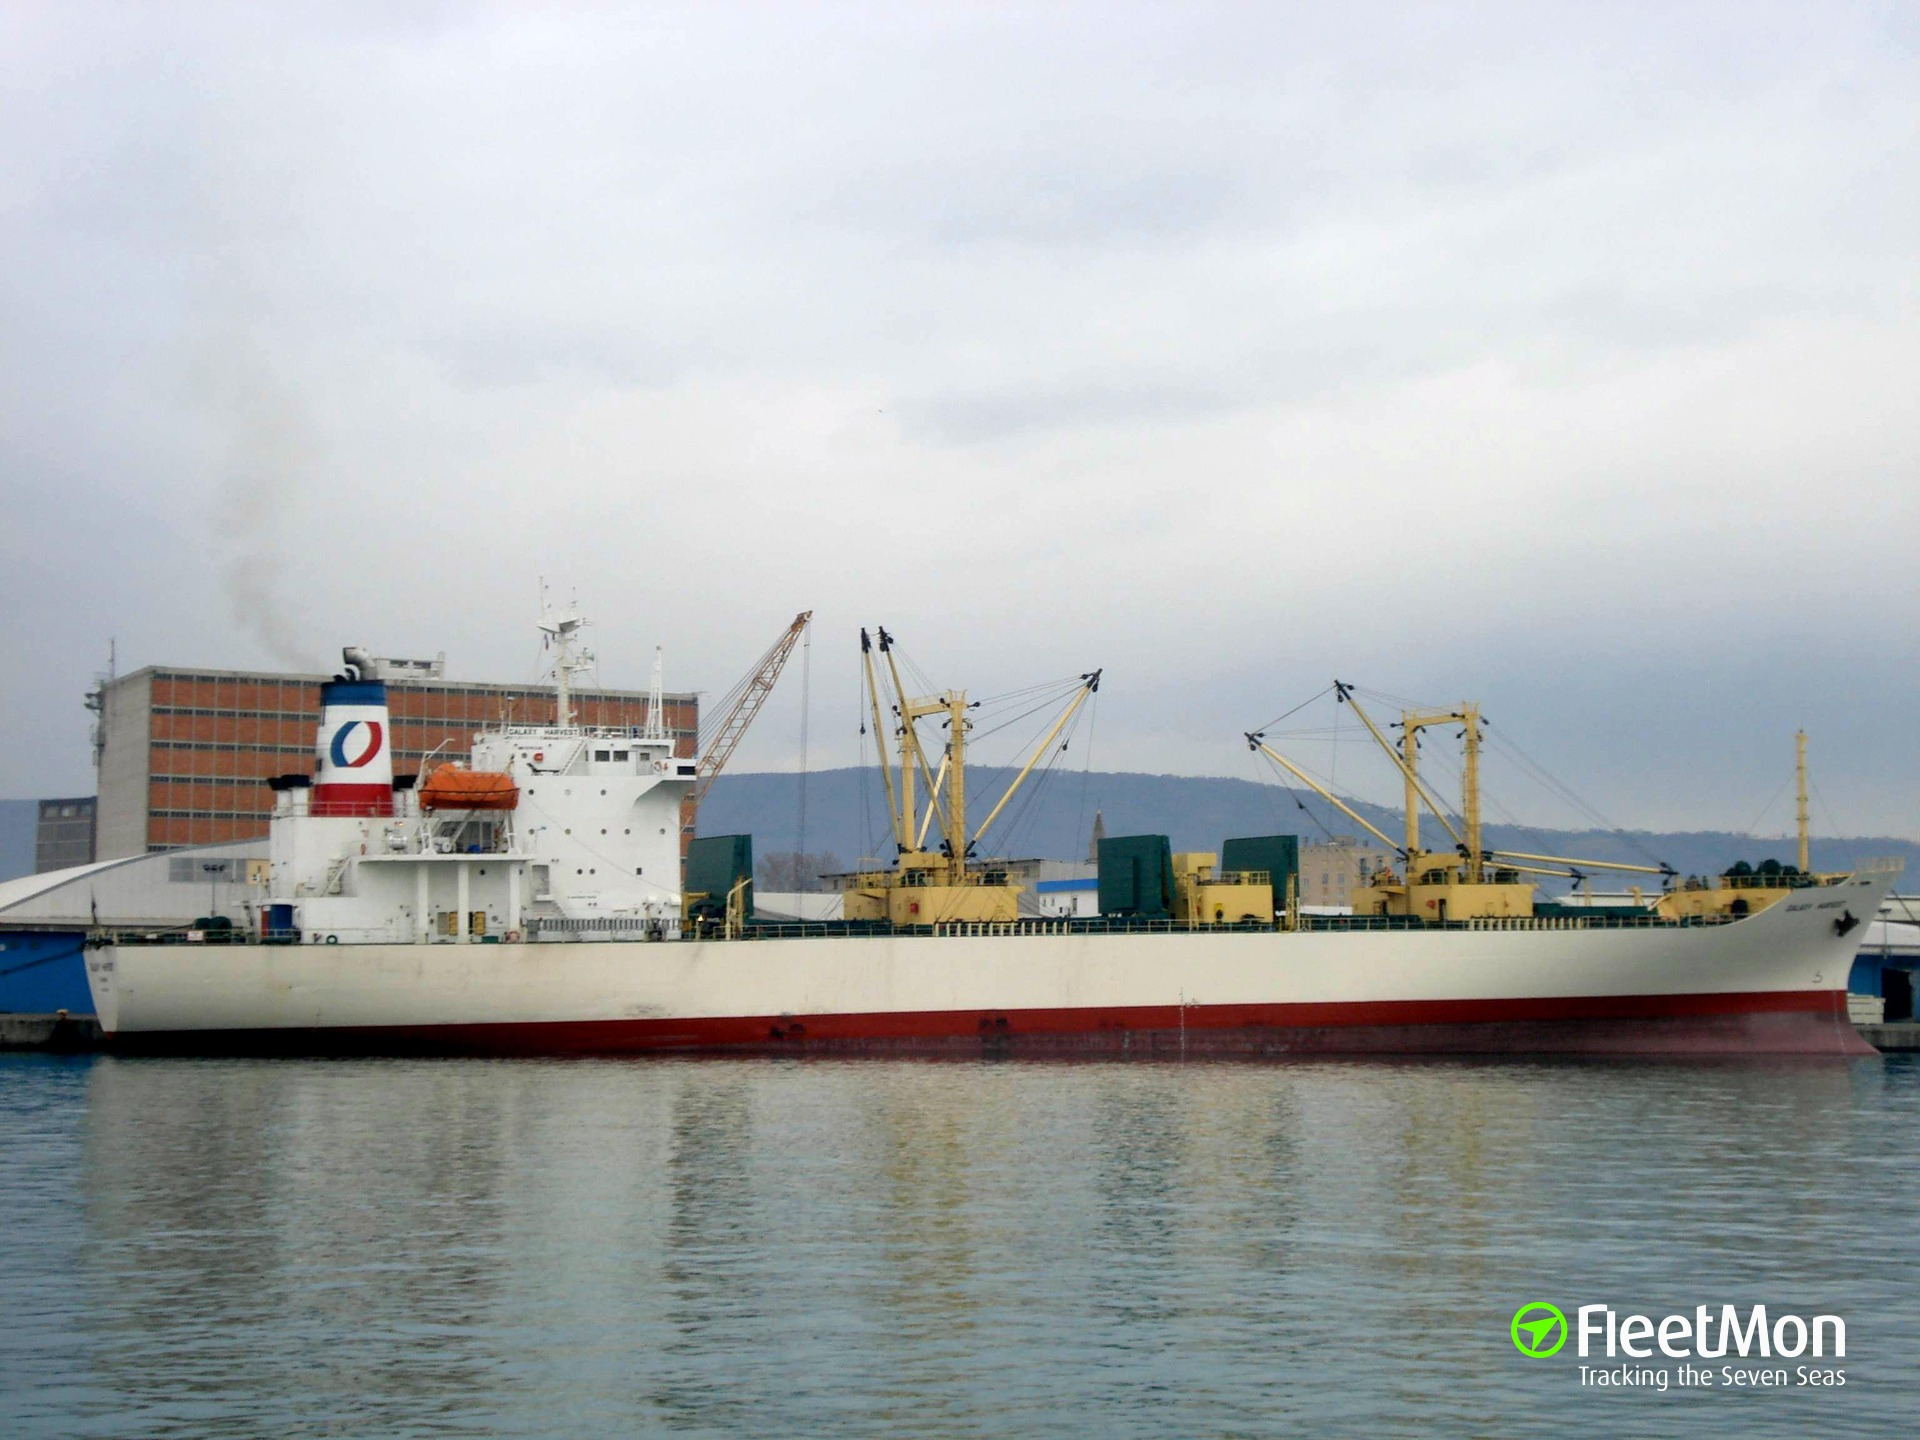 Reefer Frio Athens manned by Ukrainian crew